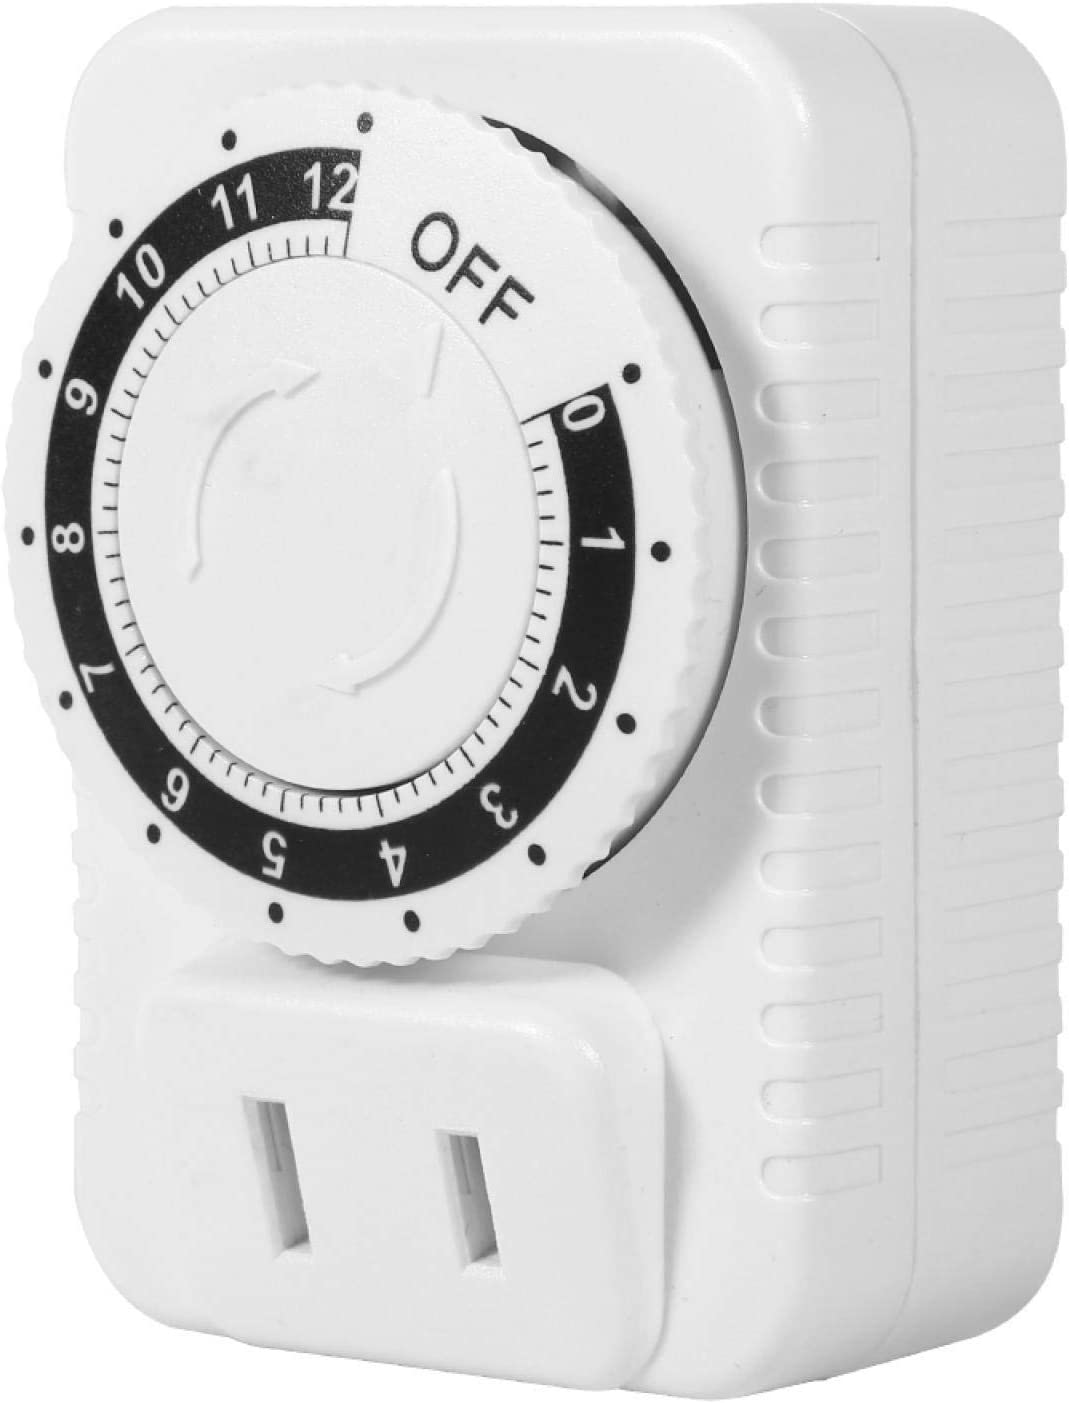 Timer Socket 12 Our shop most popular Hour Energy-Saving Selling Wa Electrical Time Mechanical